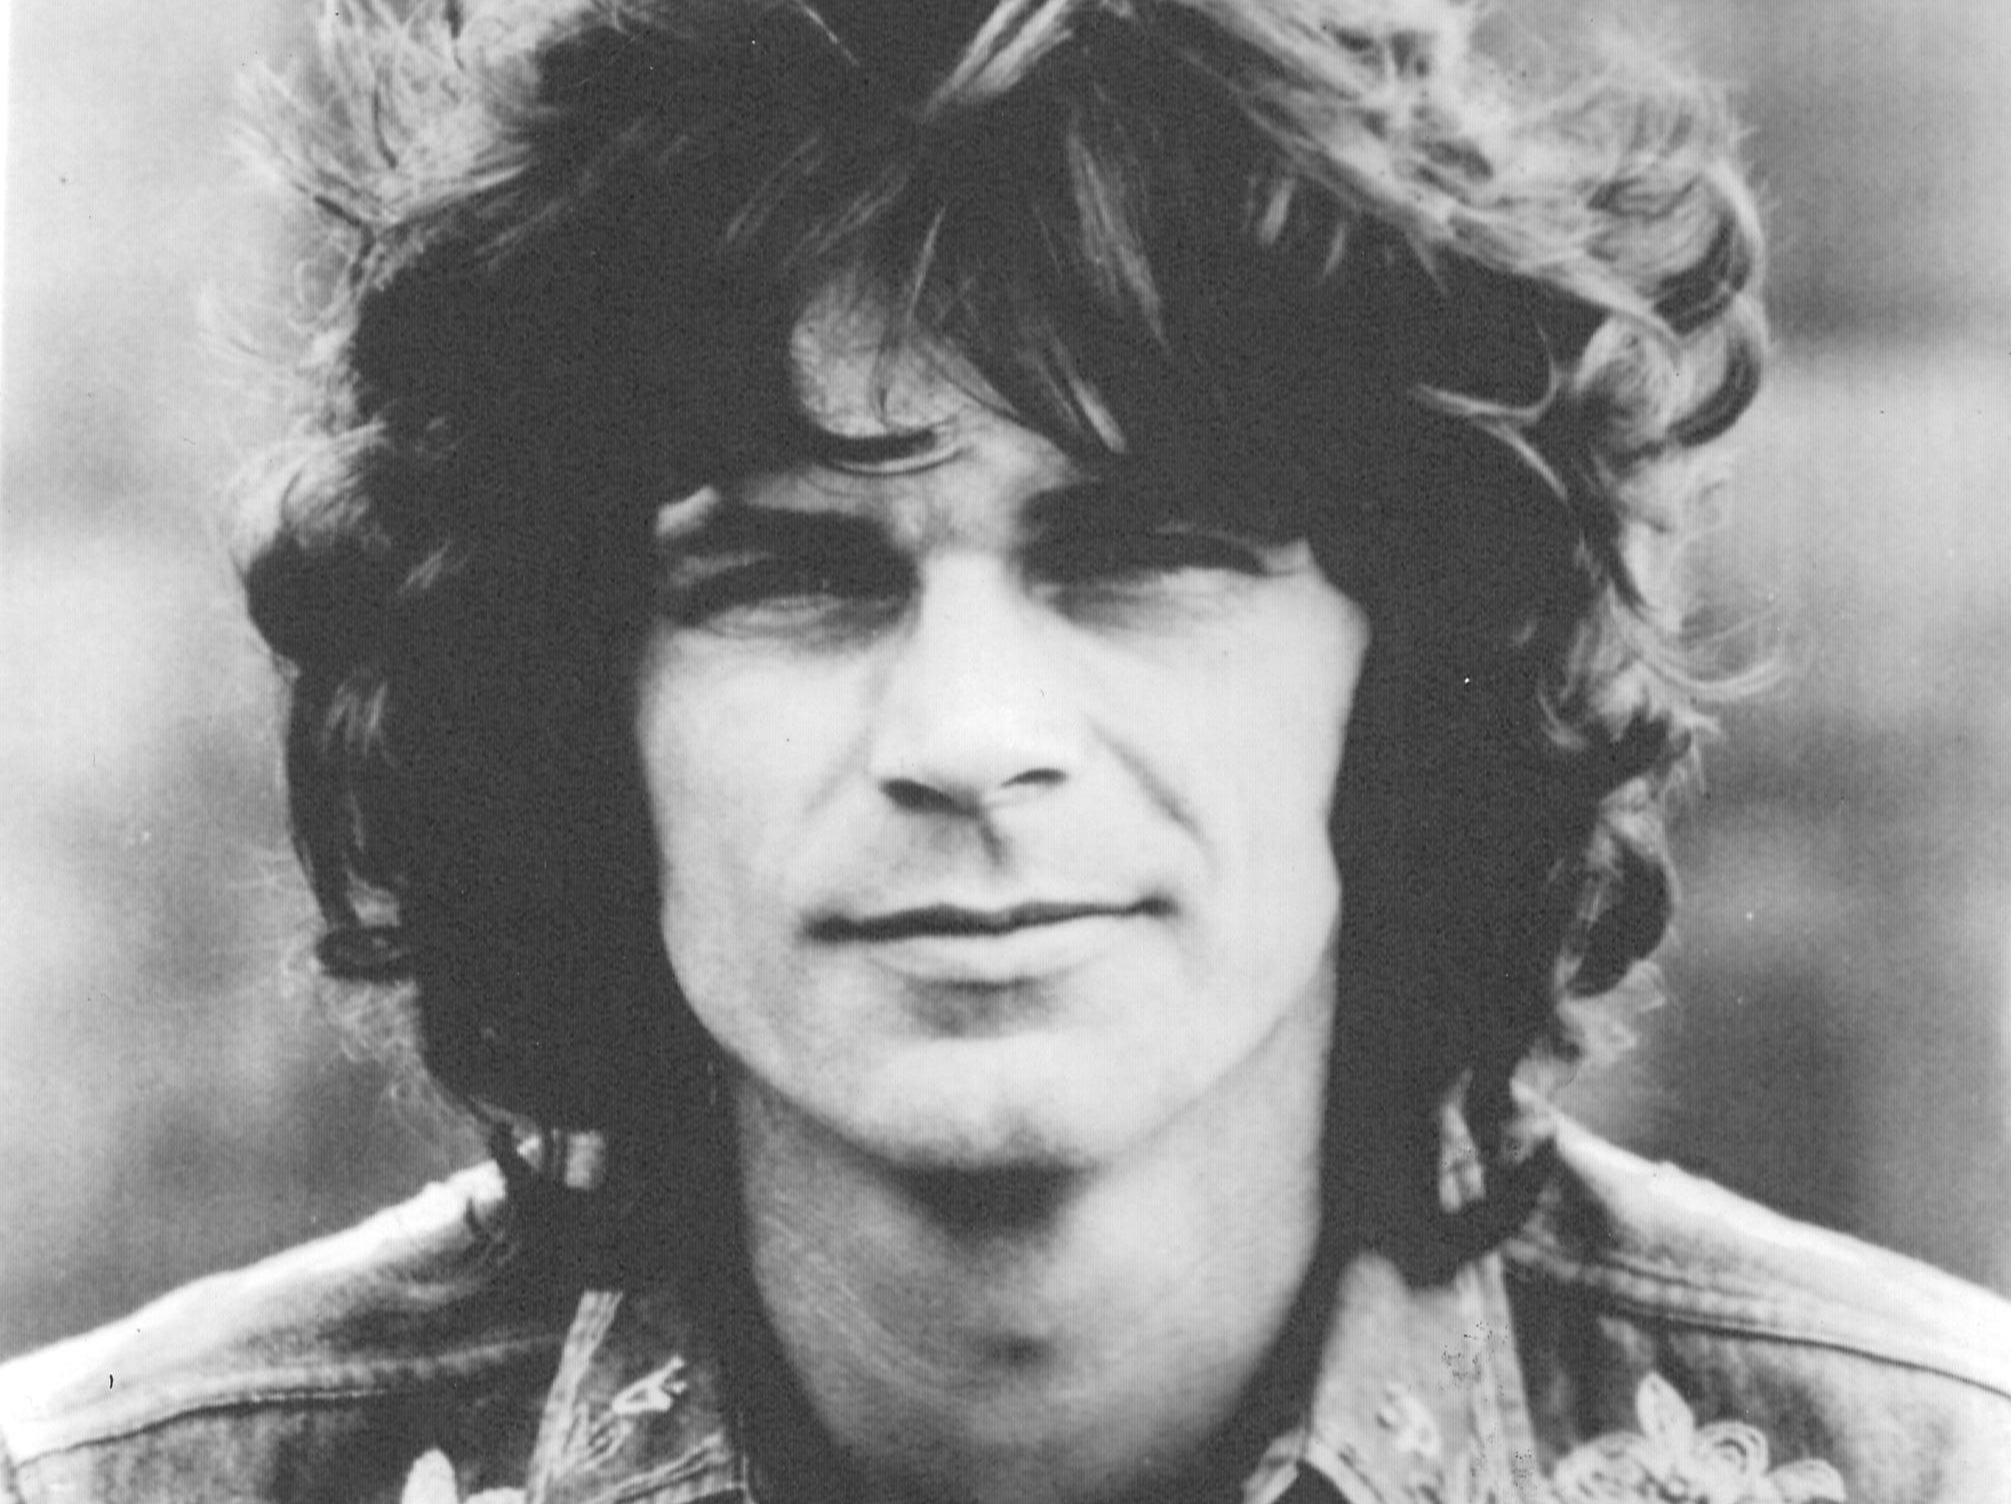 B.J. Thomas is seen in a promotional image circa 1974.